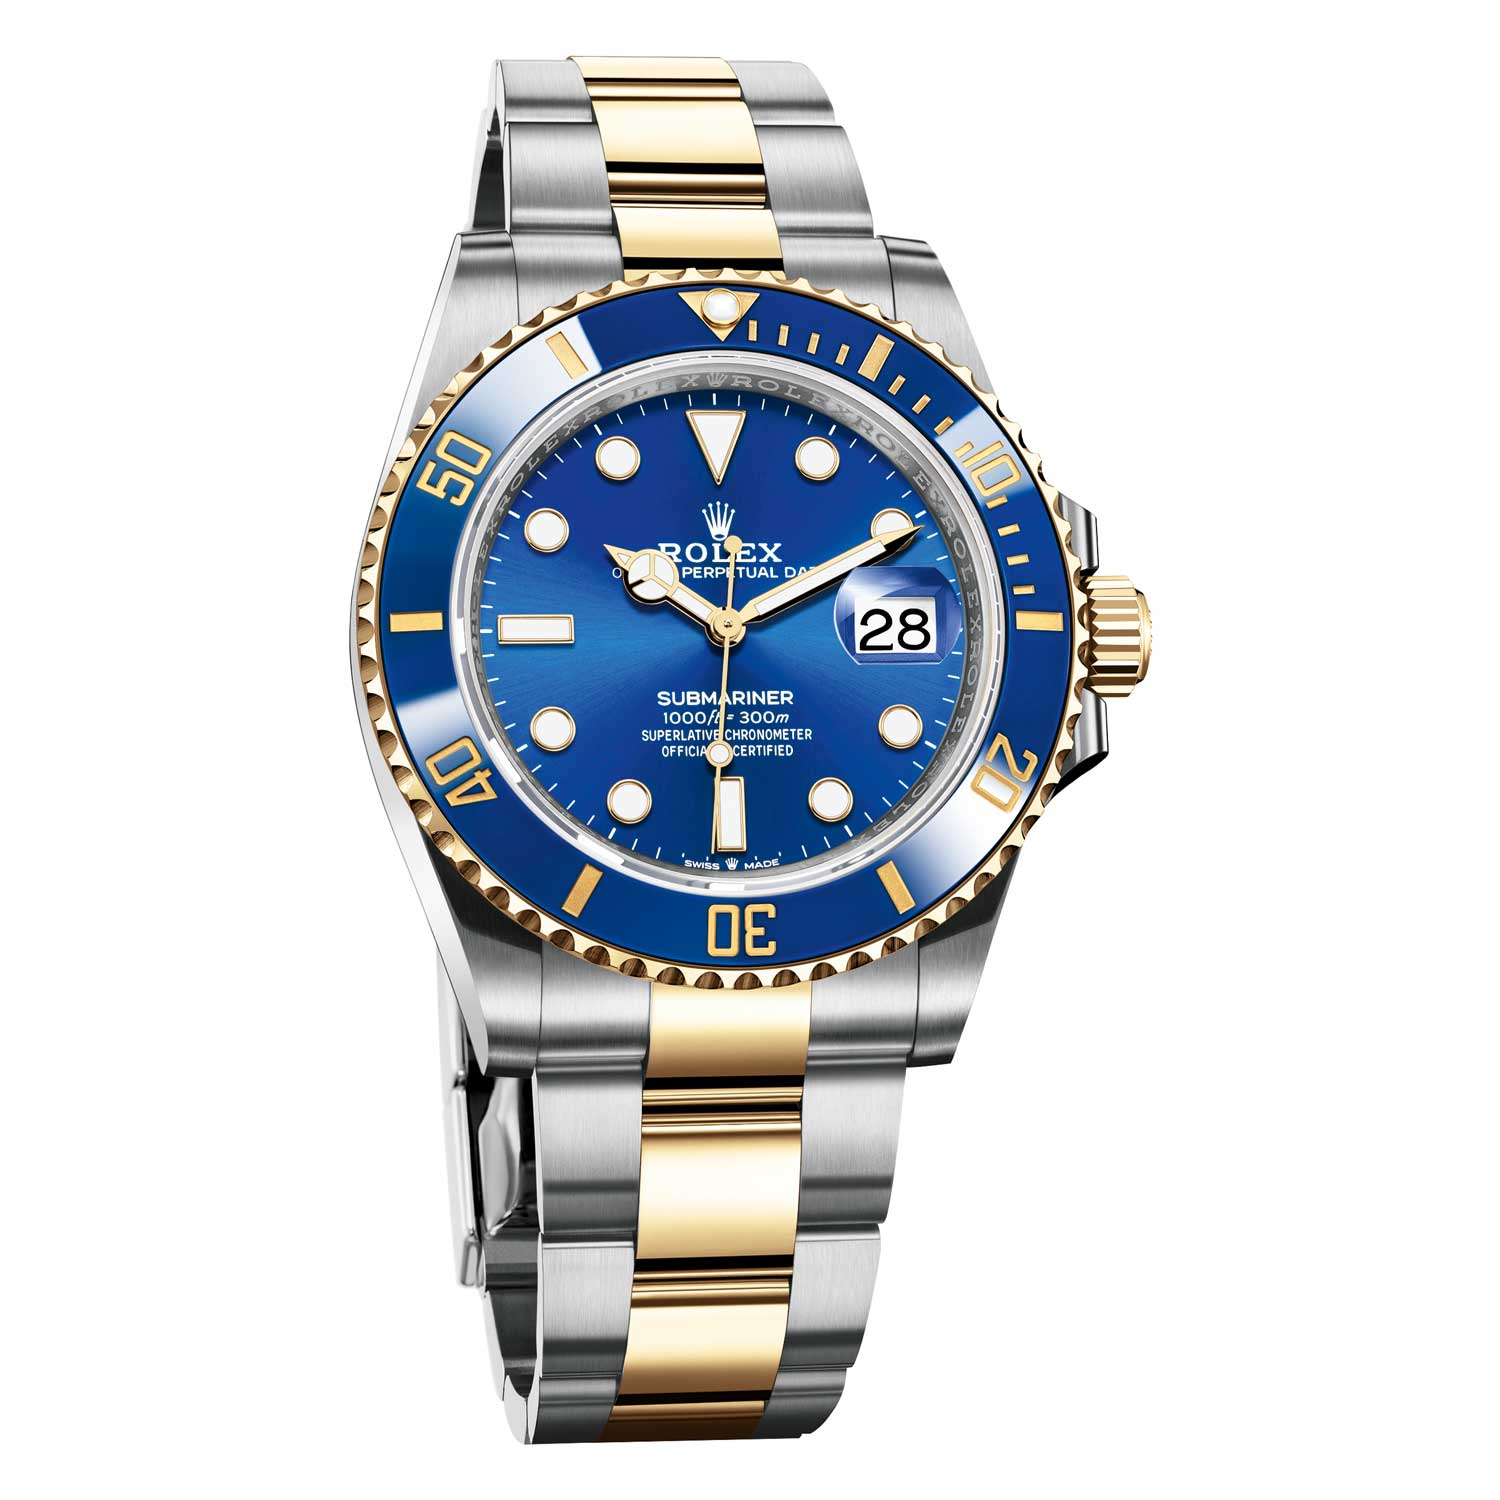 The 2020 Oyster Perpetual Submariner Date in Oystersteel and 18ct yellow gold ref. 126613LB